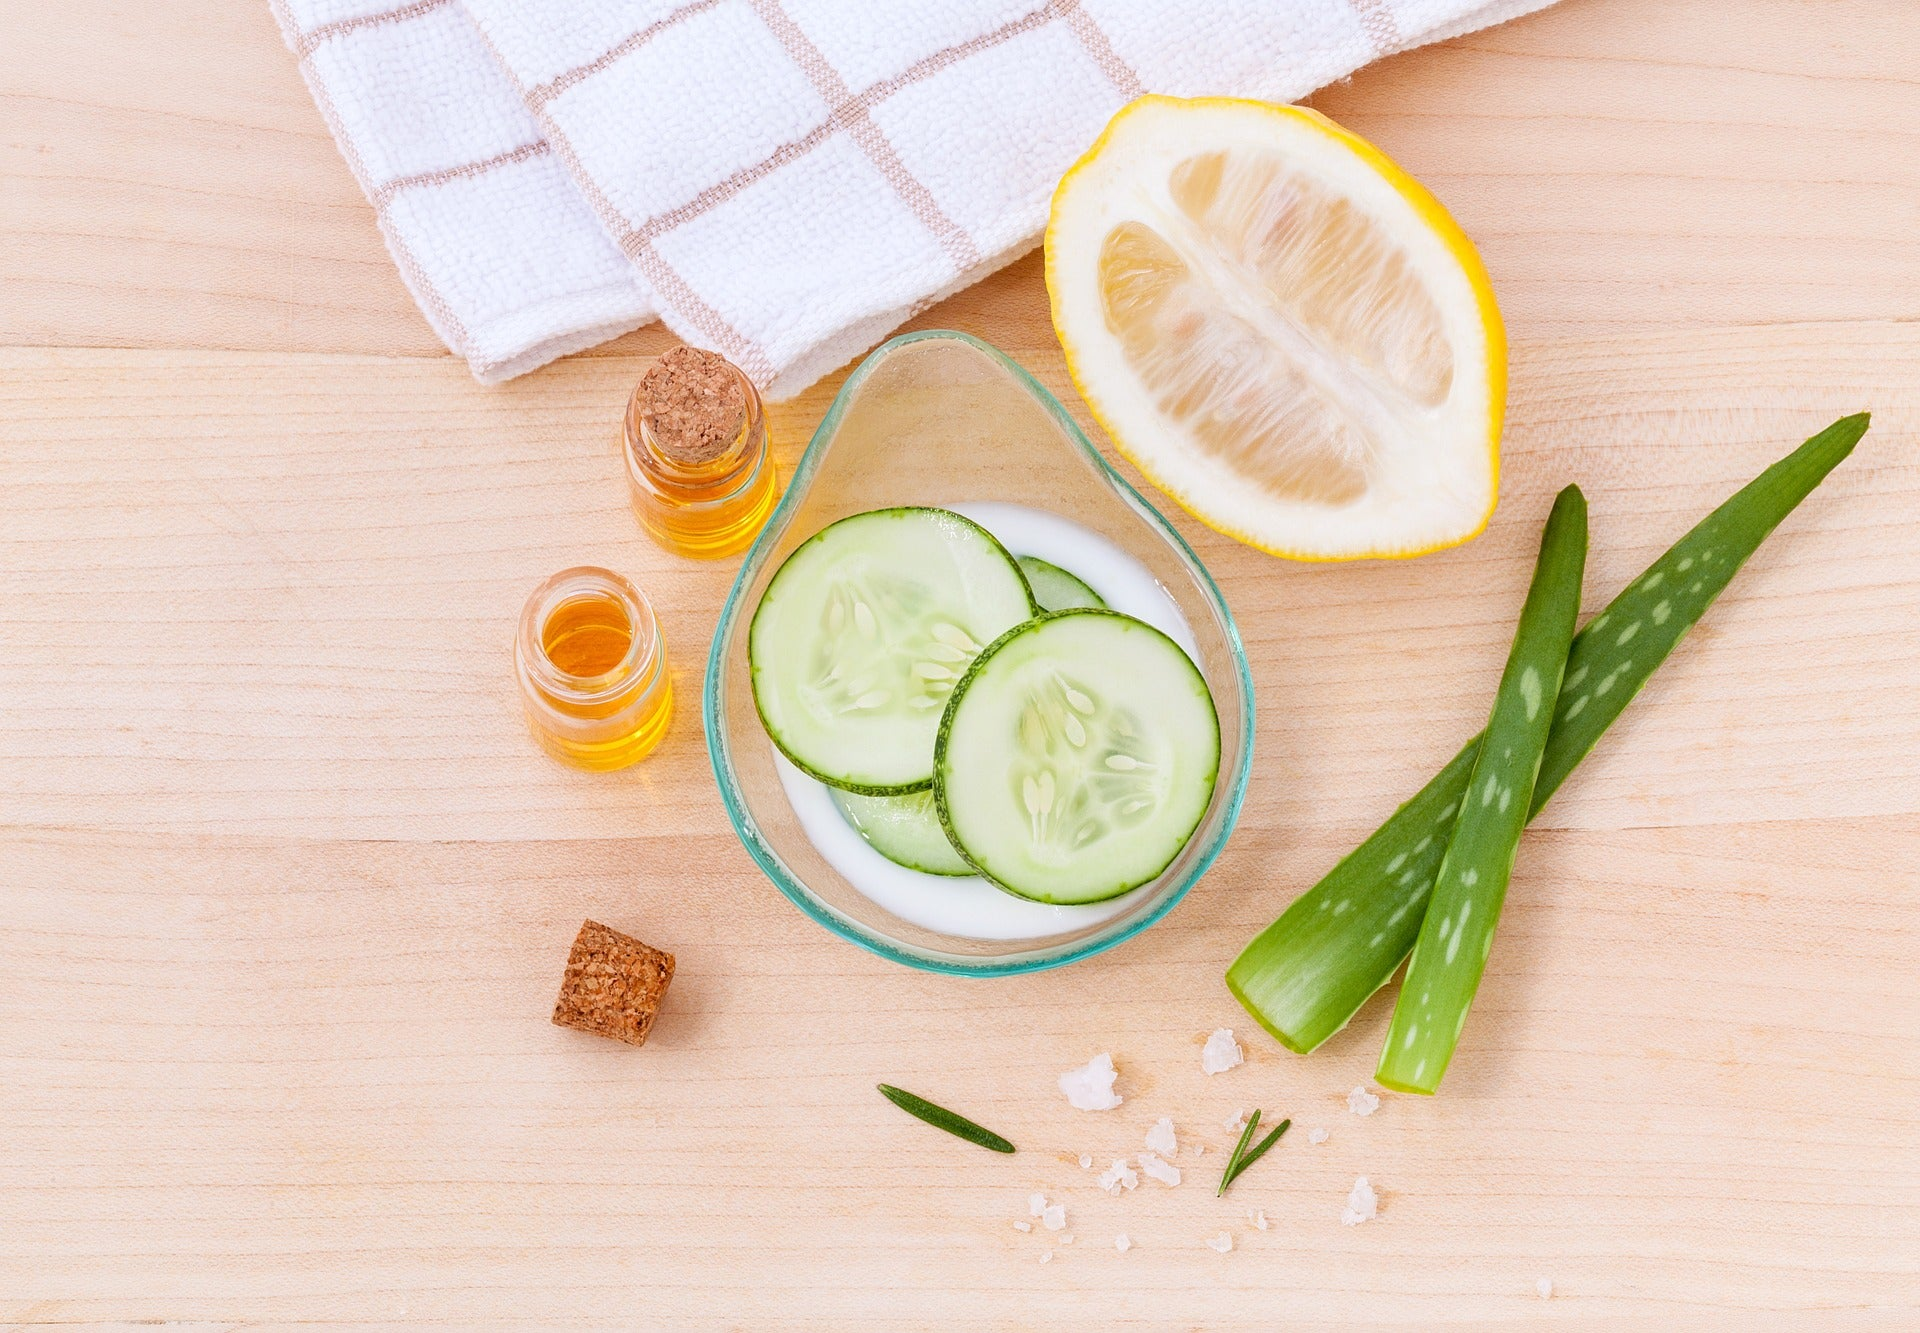 12 Toxic Beauty and Skincare Ingredients to Avoid